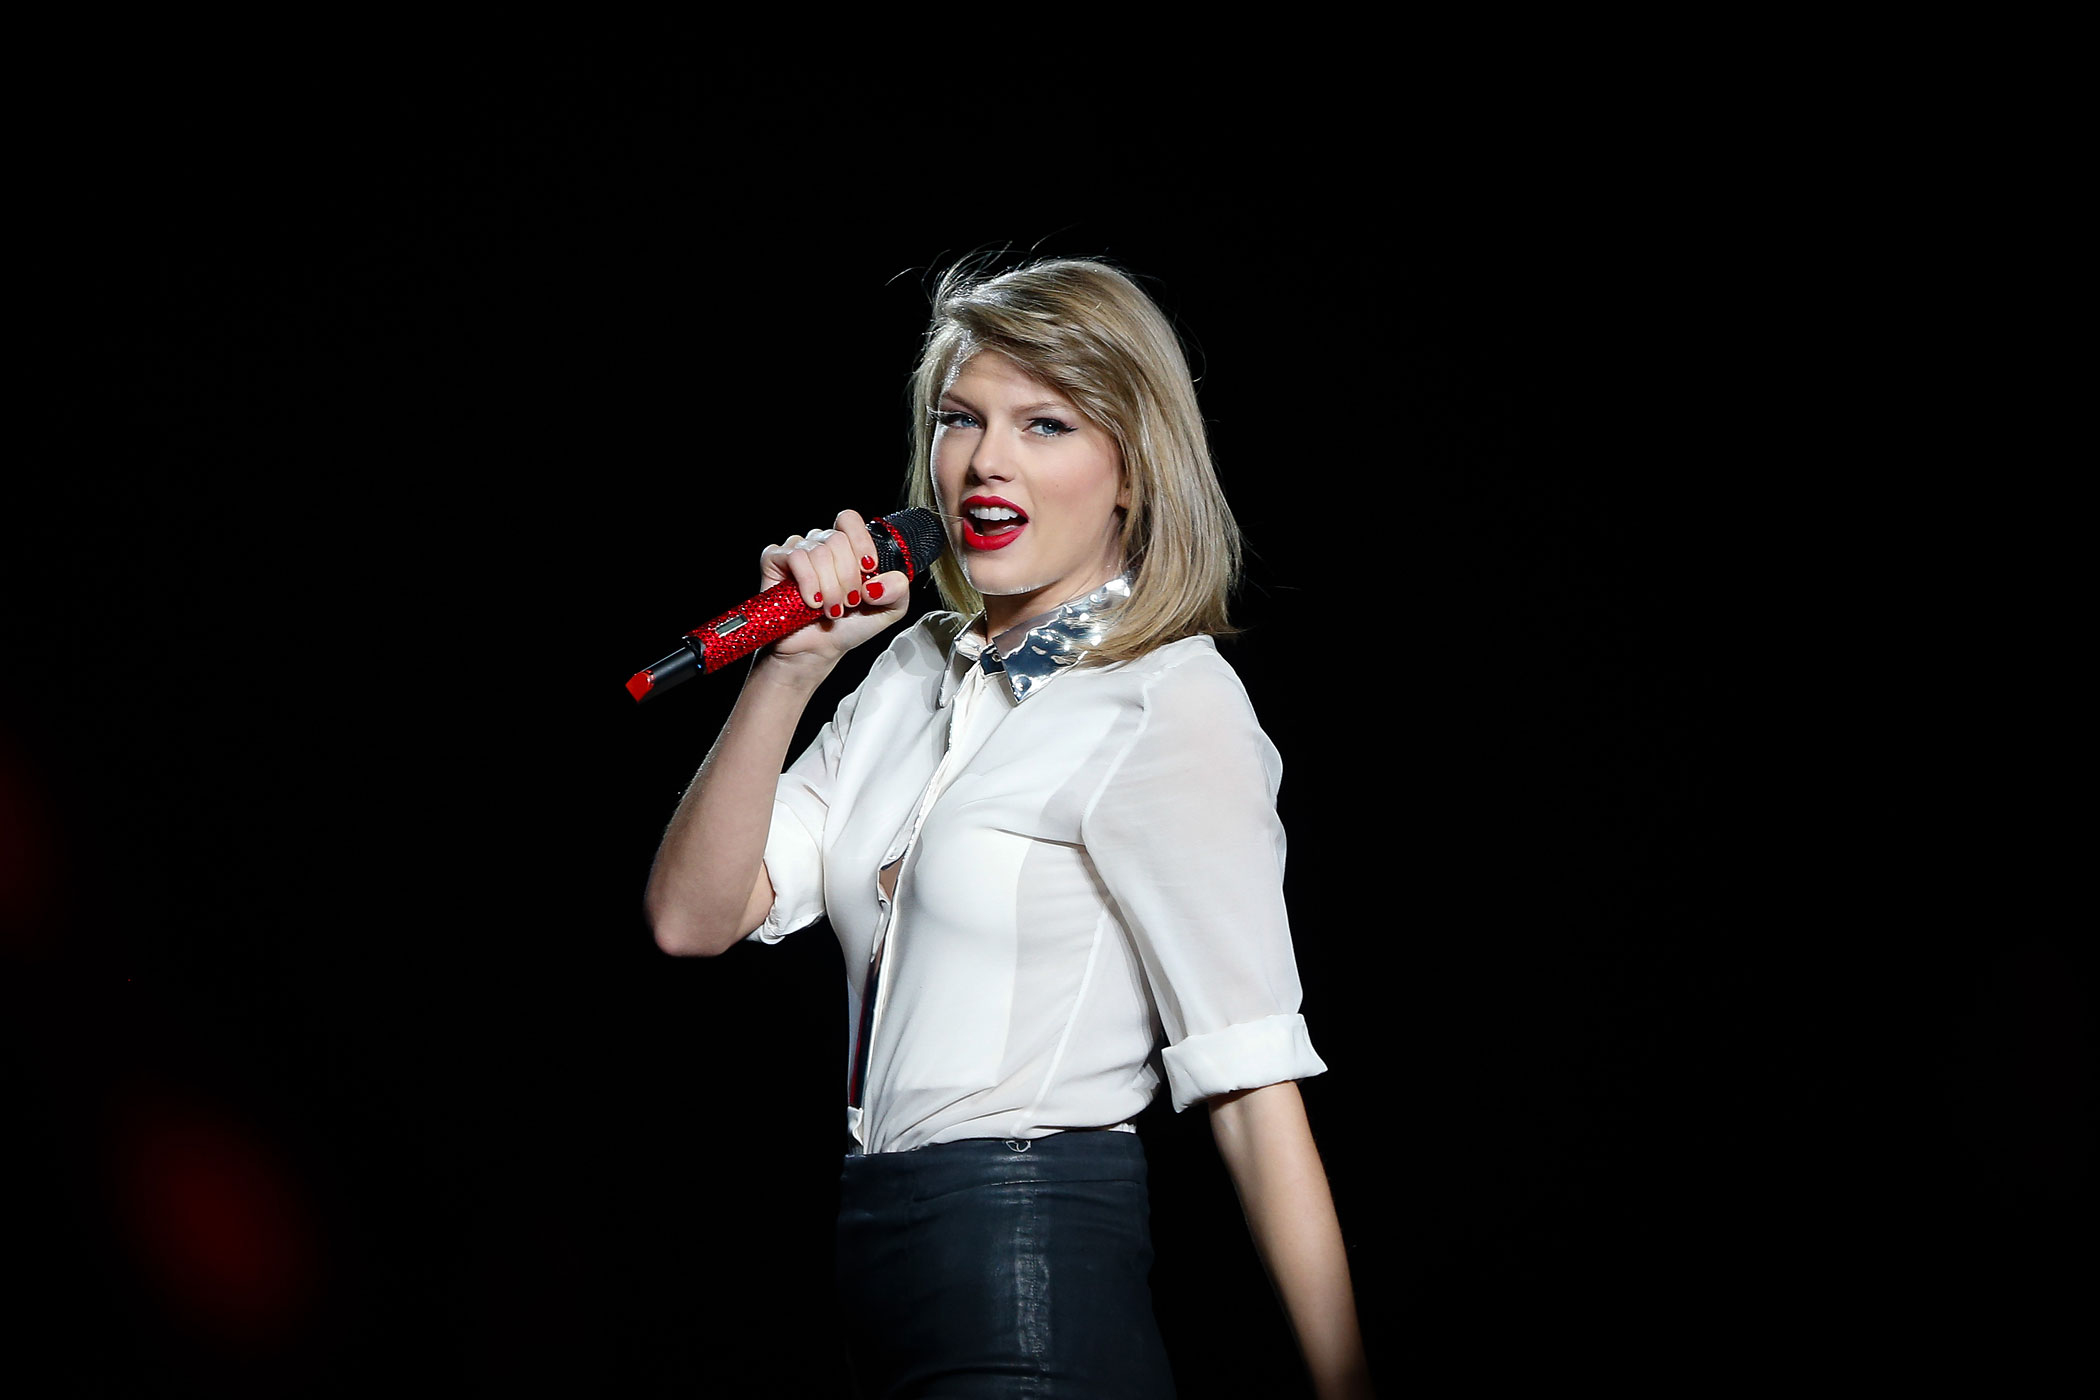 Taylor Swift performs at the Mercedes-Benz Arena on May 30, 2014 in Shanghai, China.